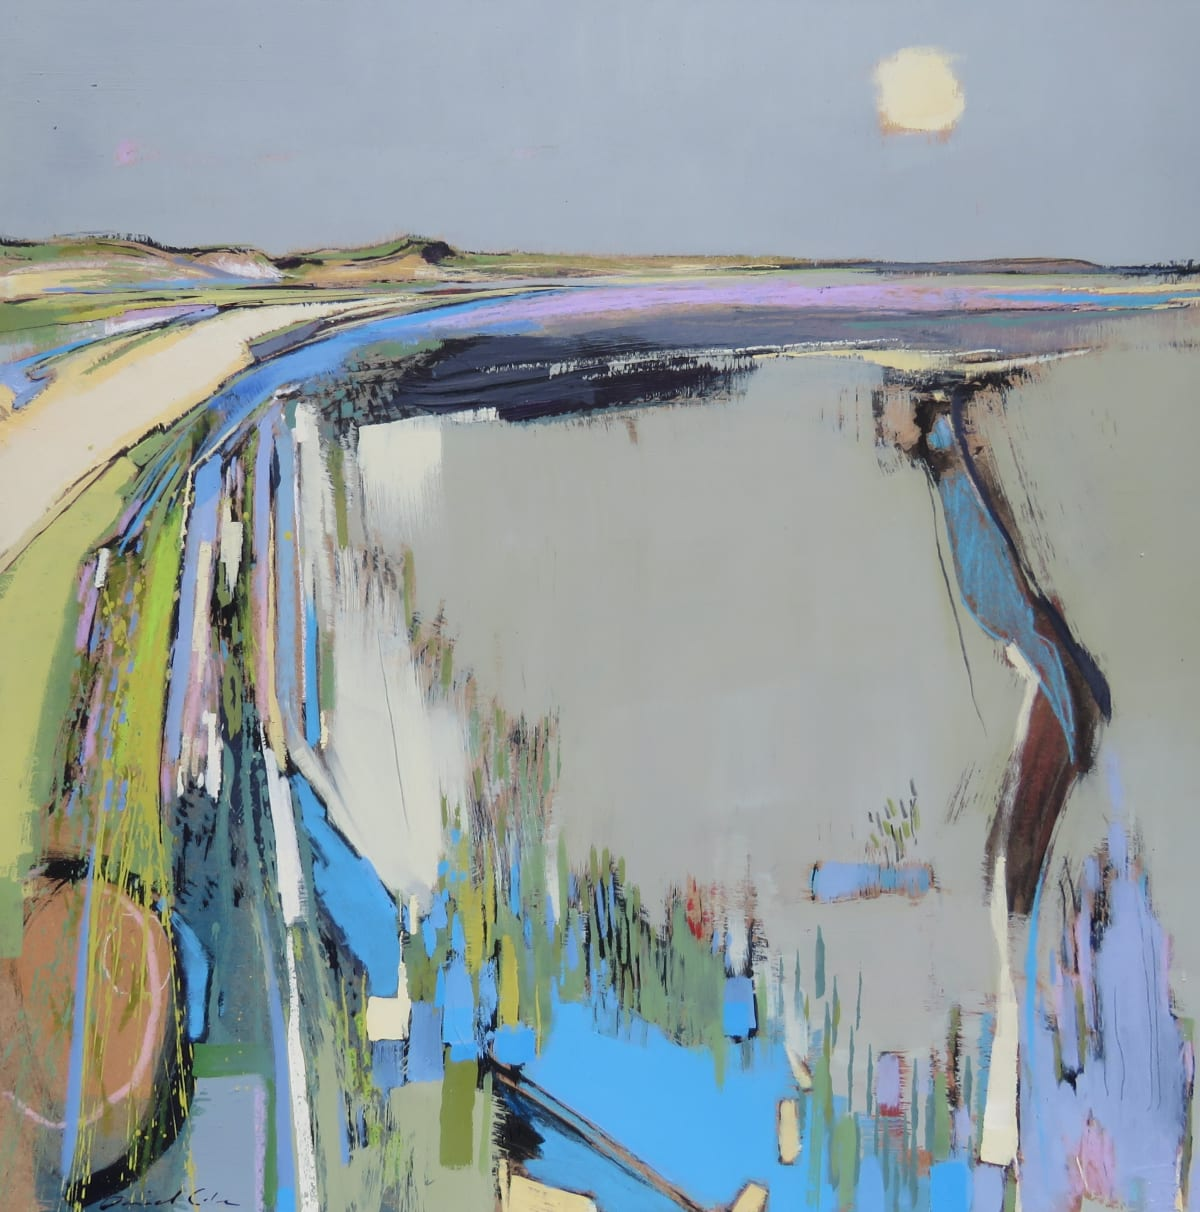 Daniel Cole Pale Sun Over Marsh Channel, Norfolk, 2019 Mixed Media Painting 50 x 50 x 4 cm 19 3/4 x 19 3/4 x 1 5/8 in